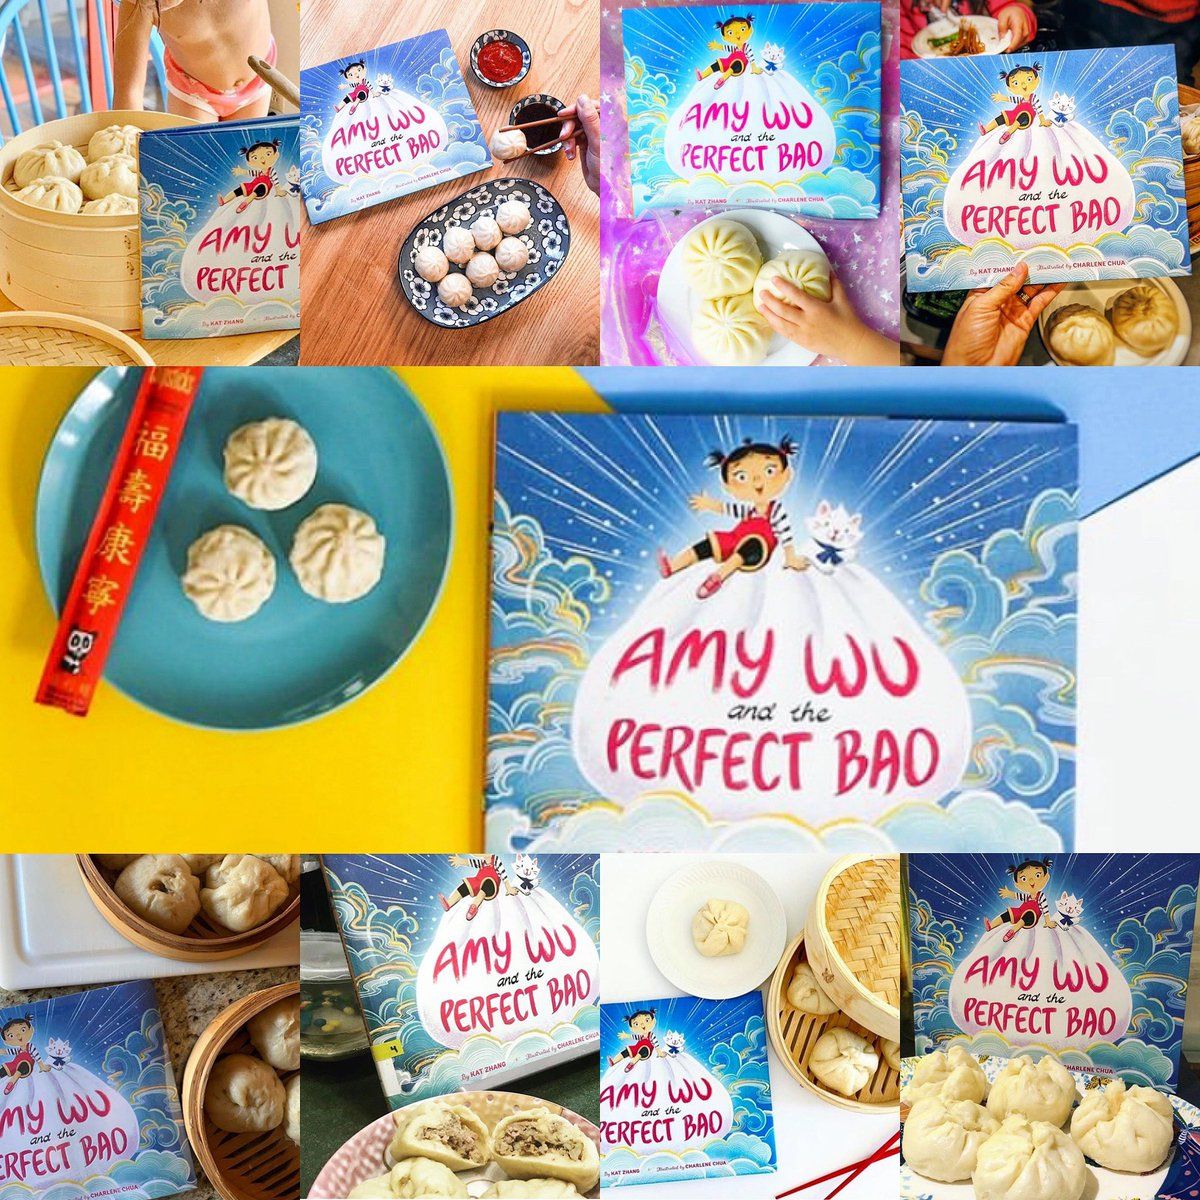 Happy National Bao Day!! I've been so lucky & thrilled to see AMY WU readers make bao all year. Thank you for sharing your delicious pictures! (PS I saved these pics over time from social media. If one is urs, pls let me know if u'd like a tag or the pic removed!) #nationalbaoday https://t.co/xvrGNI8kzj